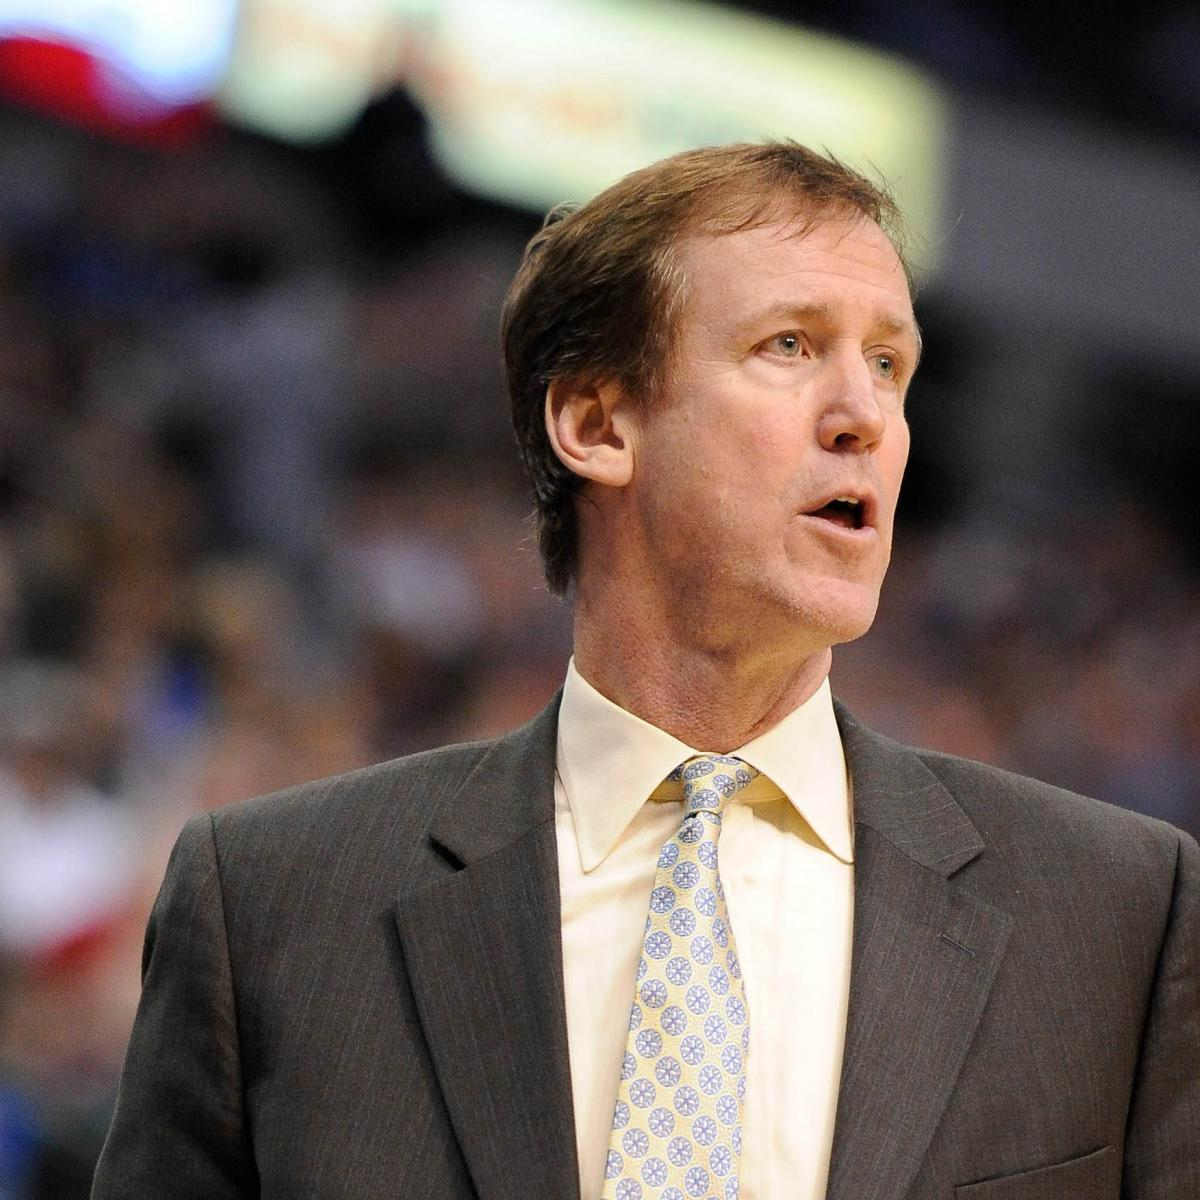 Portland Trail Blazers Coach: Portland Trail Blazers Hire Terry Stotts As Head Coach